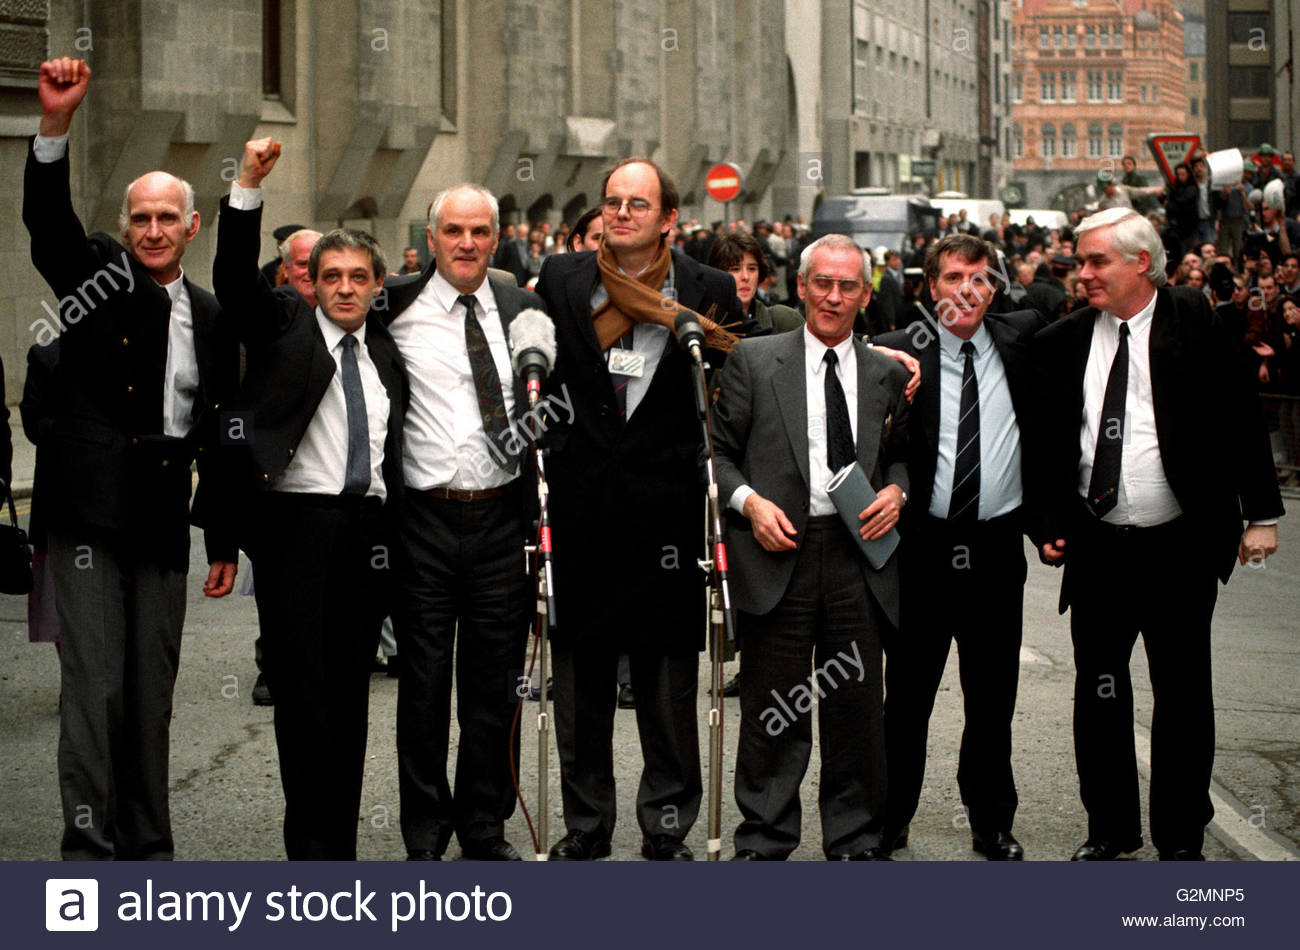 File photo dated 14/03/91 of the Birmingham Six outside the Old Bailey in London, after their convictions were quashed. - Stock Image